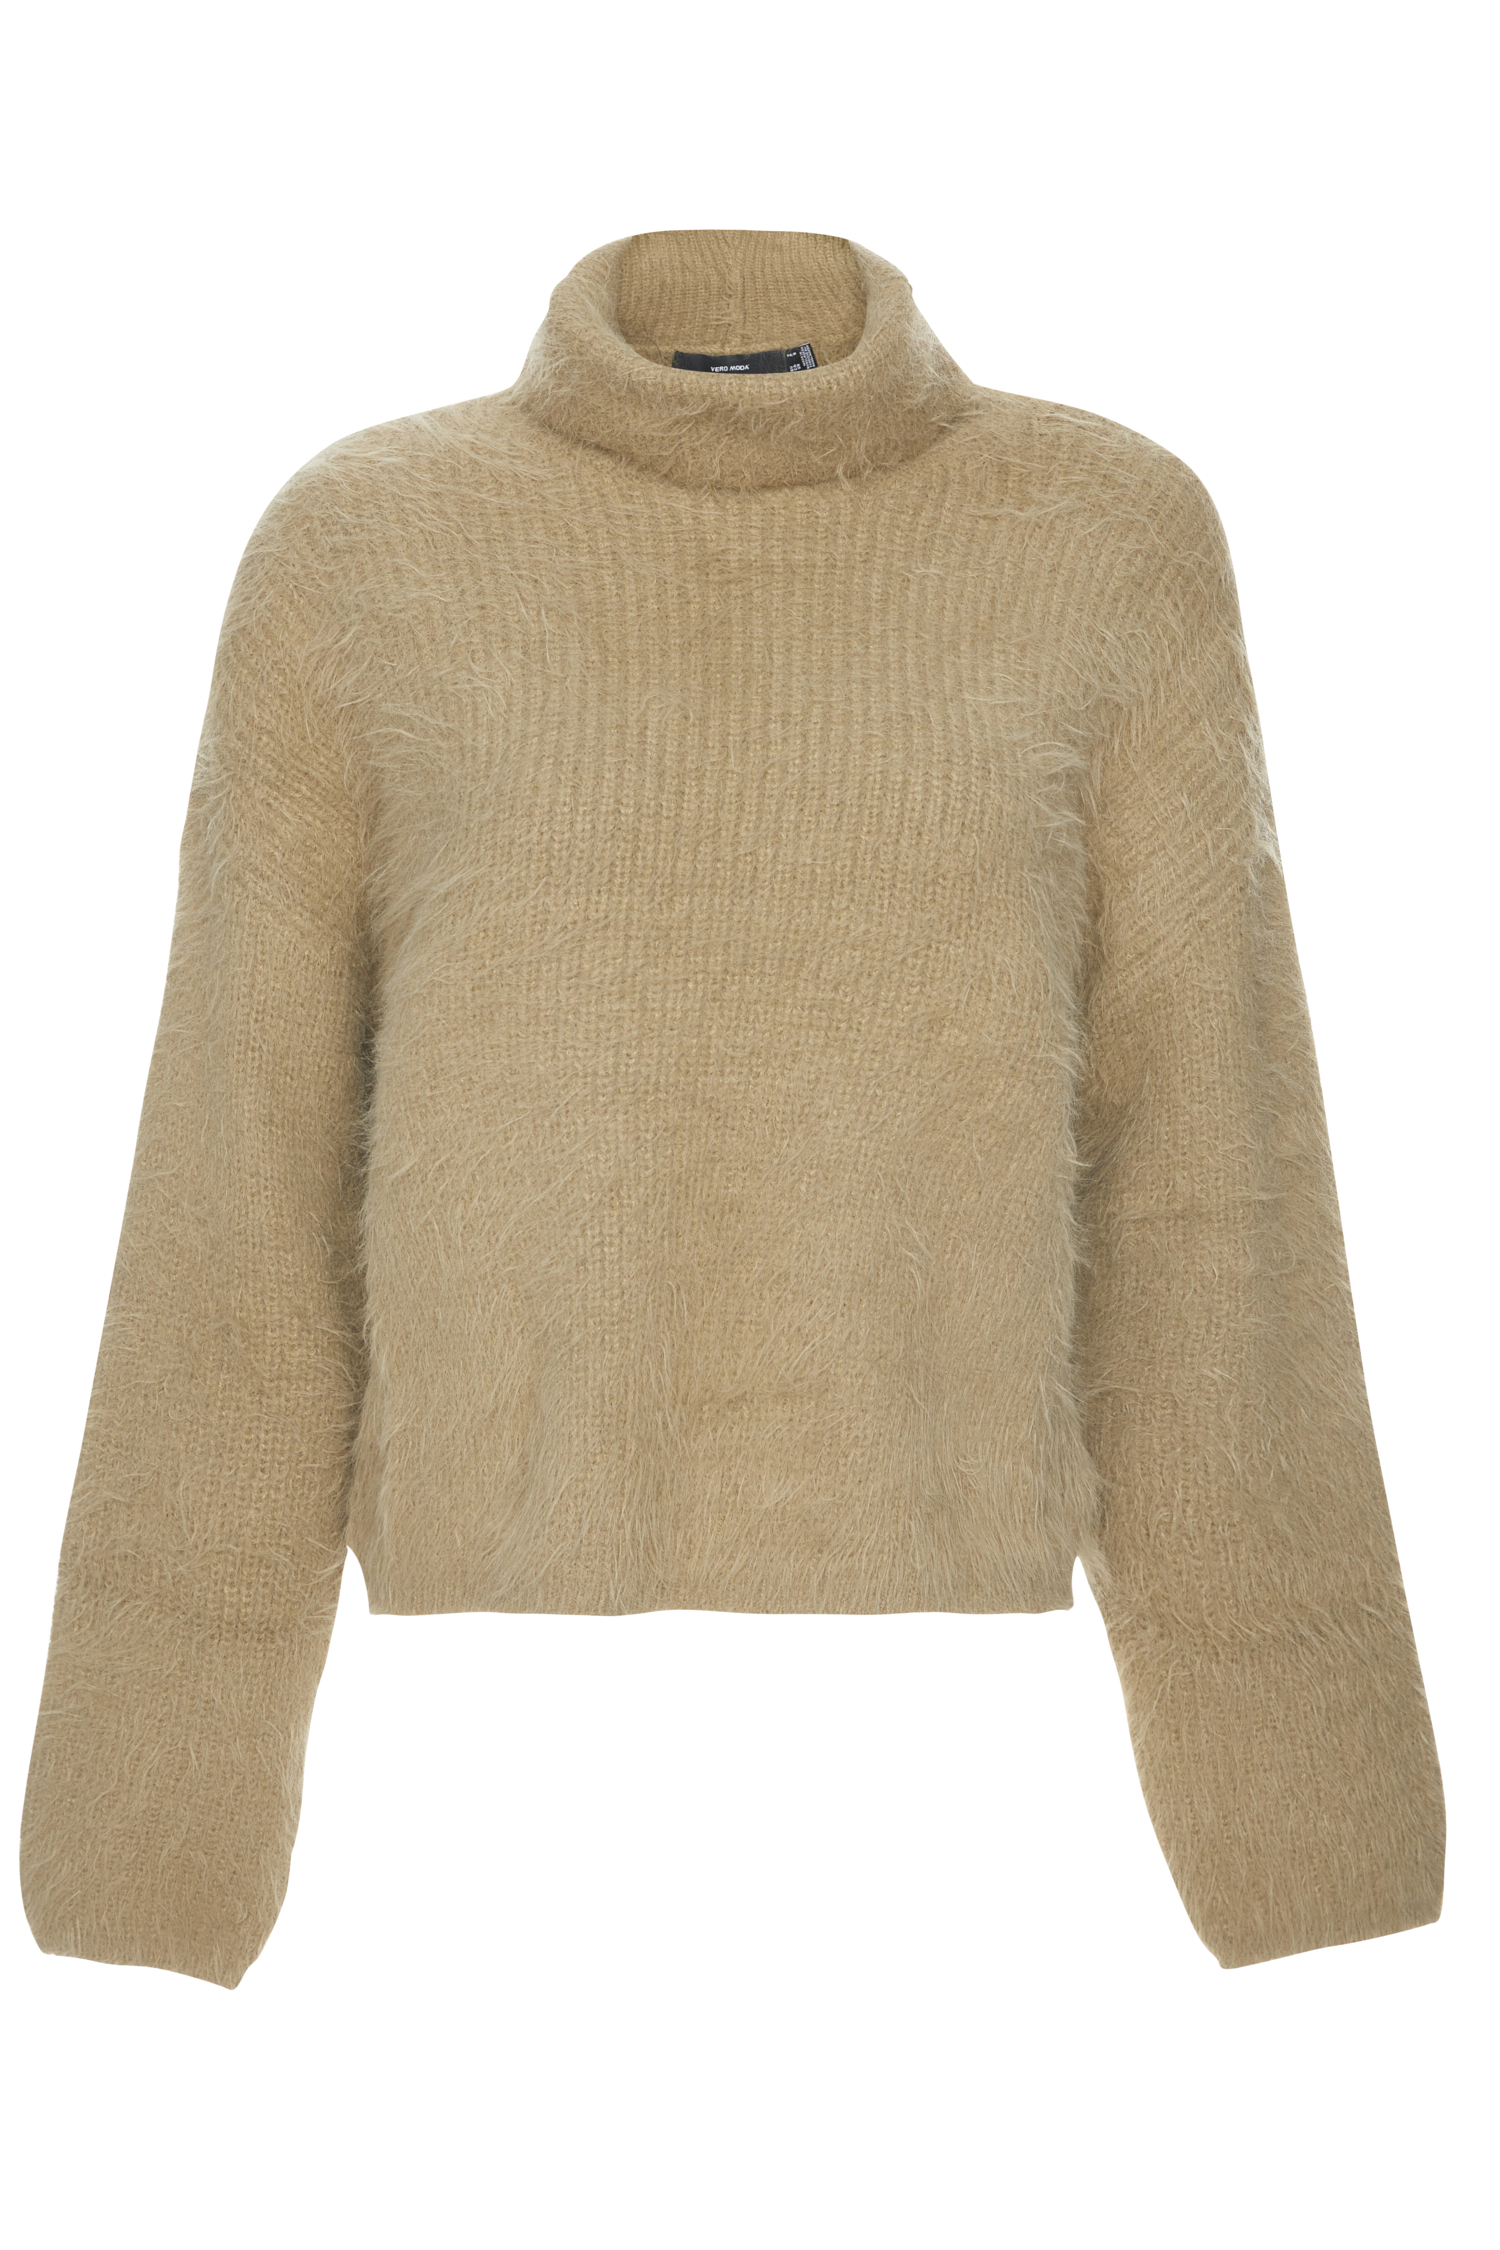 Vero Moda Eyelash Knit Roll Neck Sweater